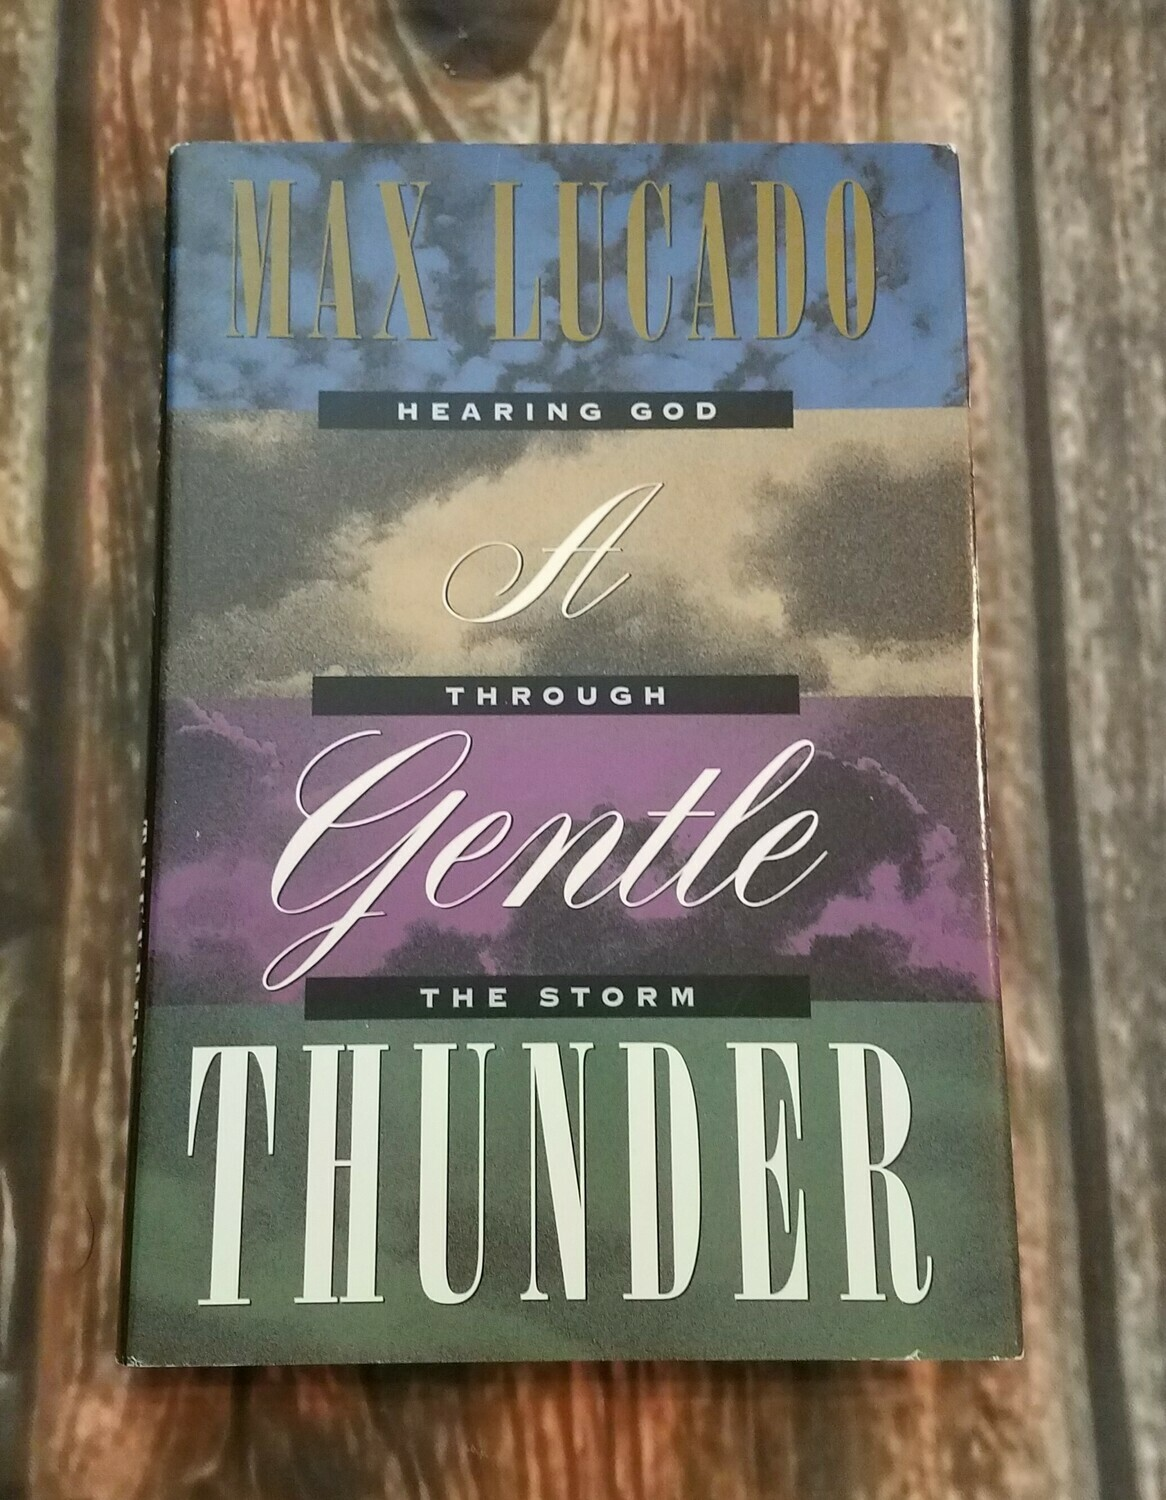 A Gentle Thunder by Max Lucado